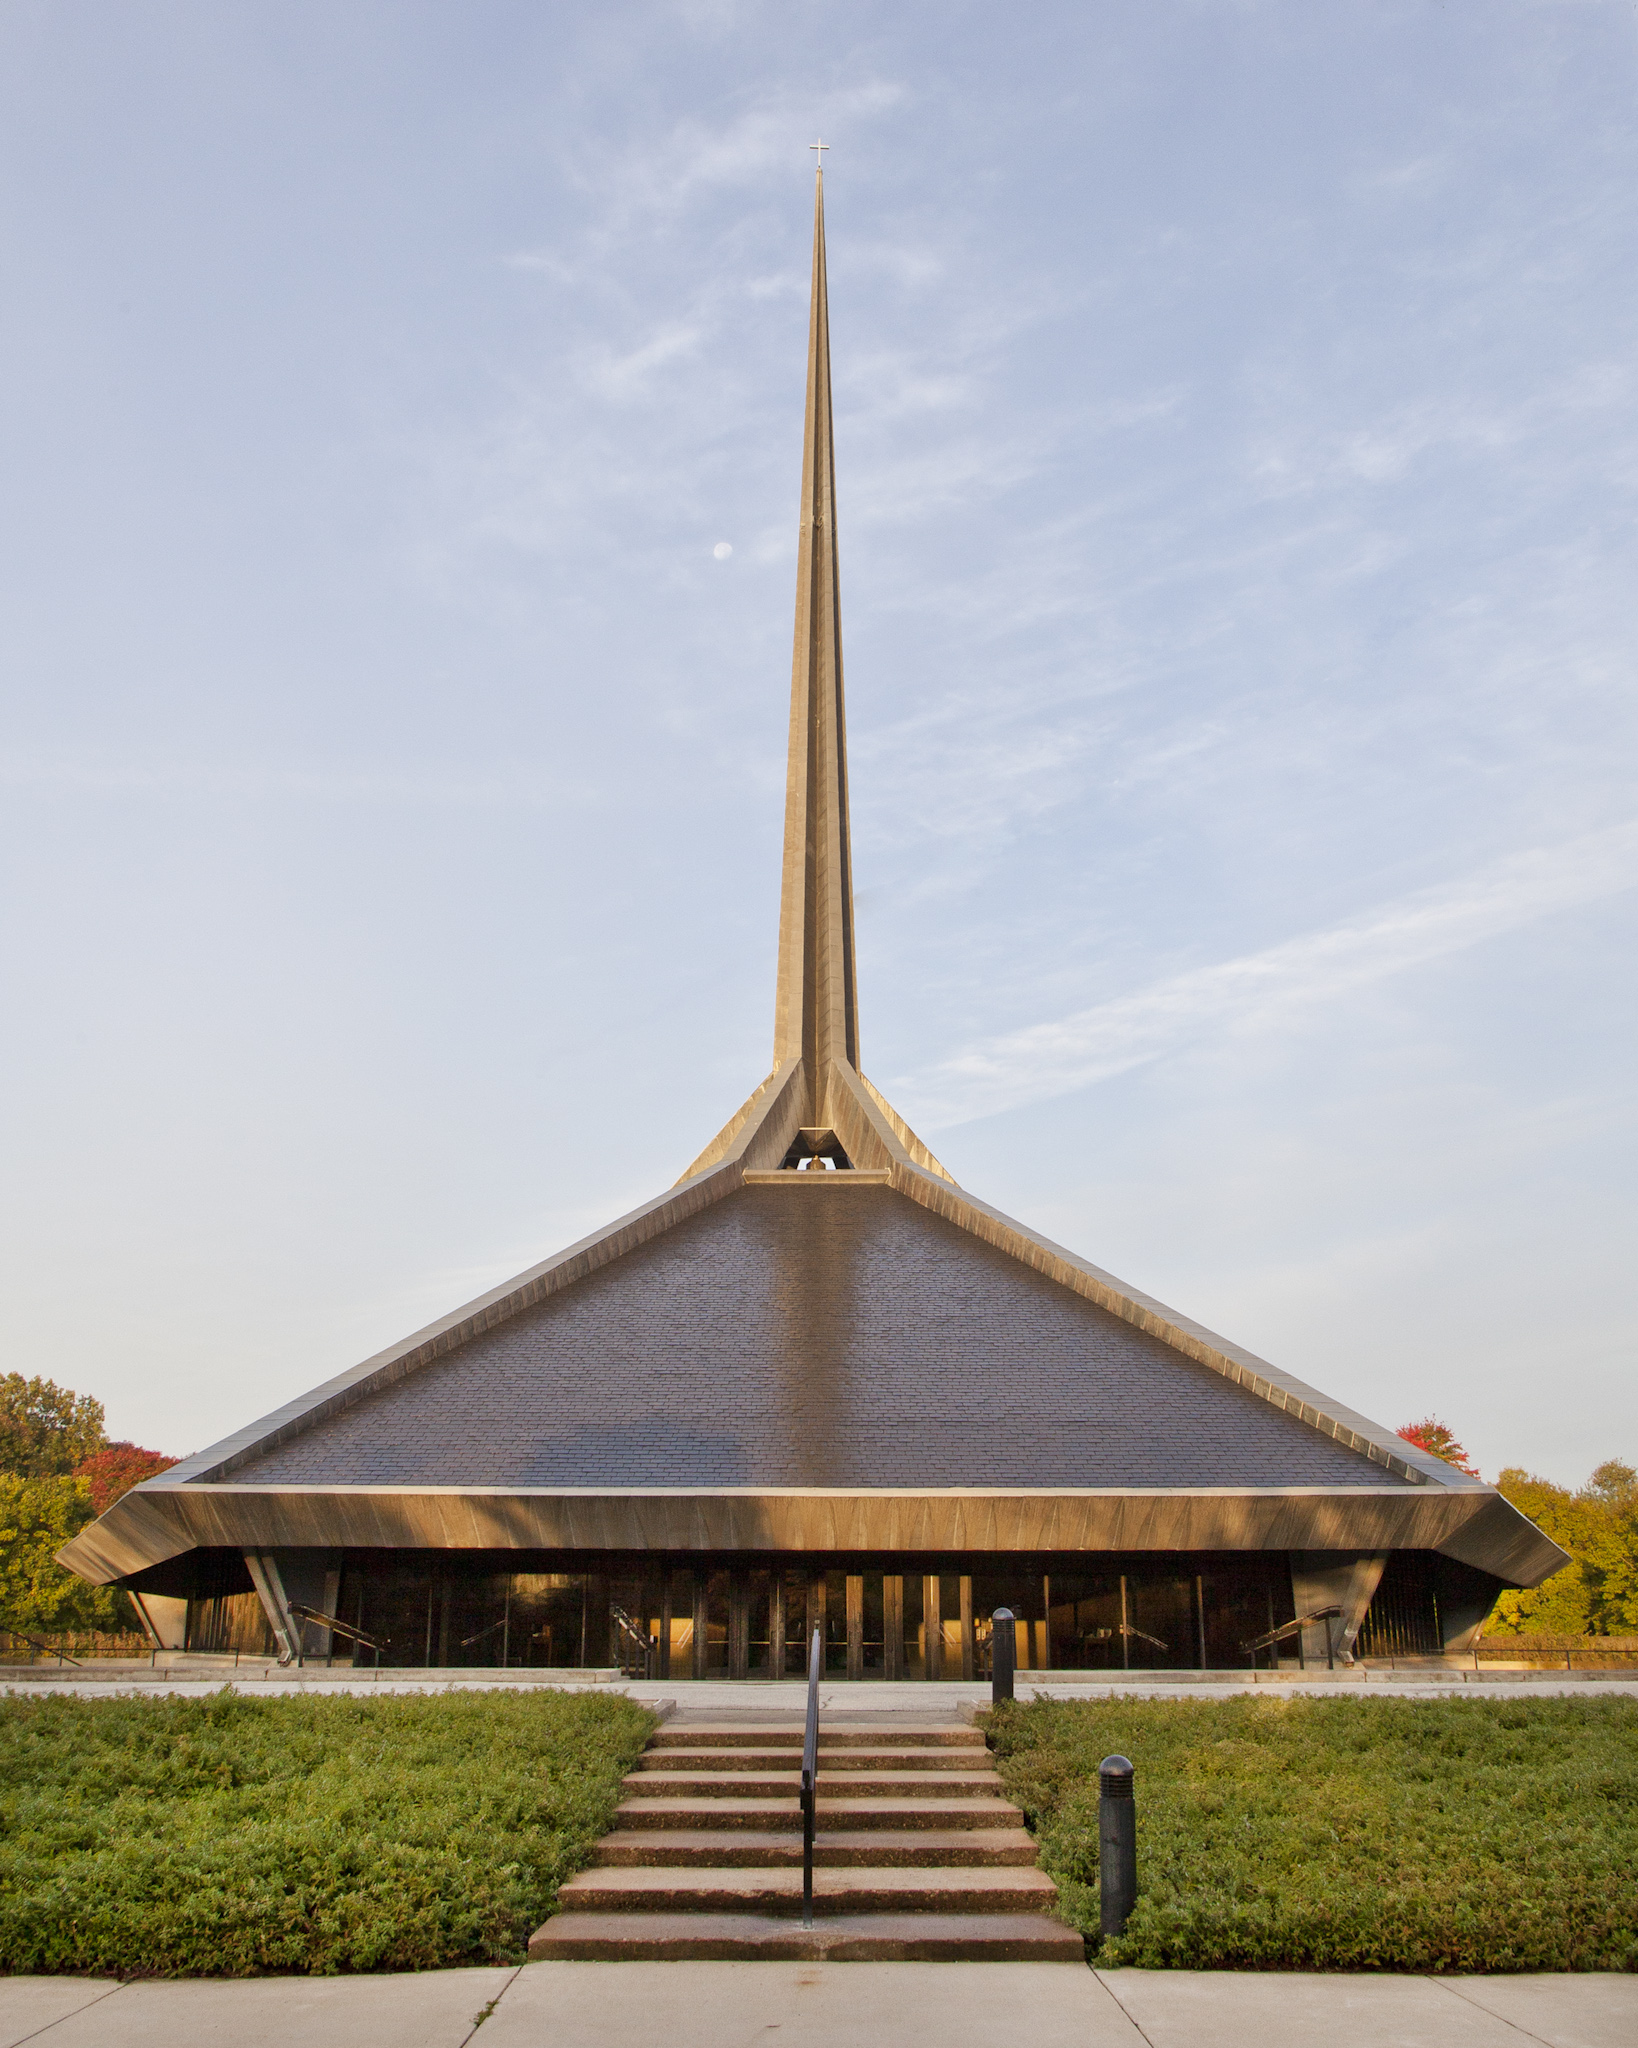 Photo of North Christian Church's triangular rooftop and sharp steeple pointing upwards towards the sky